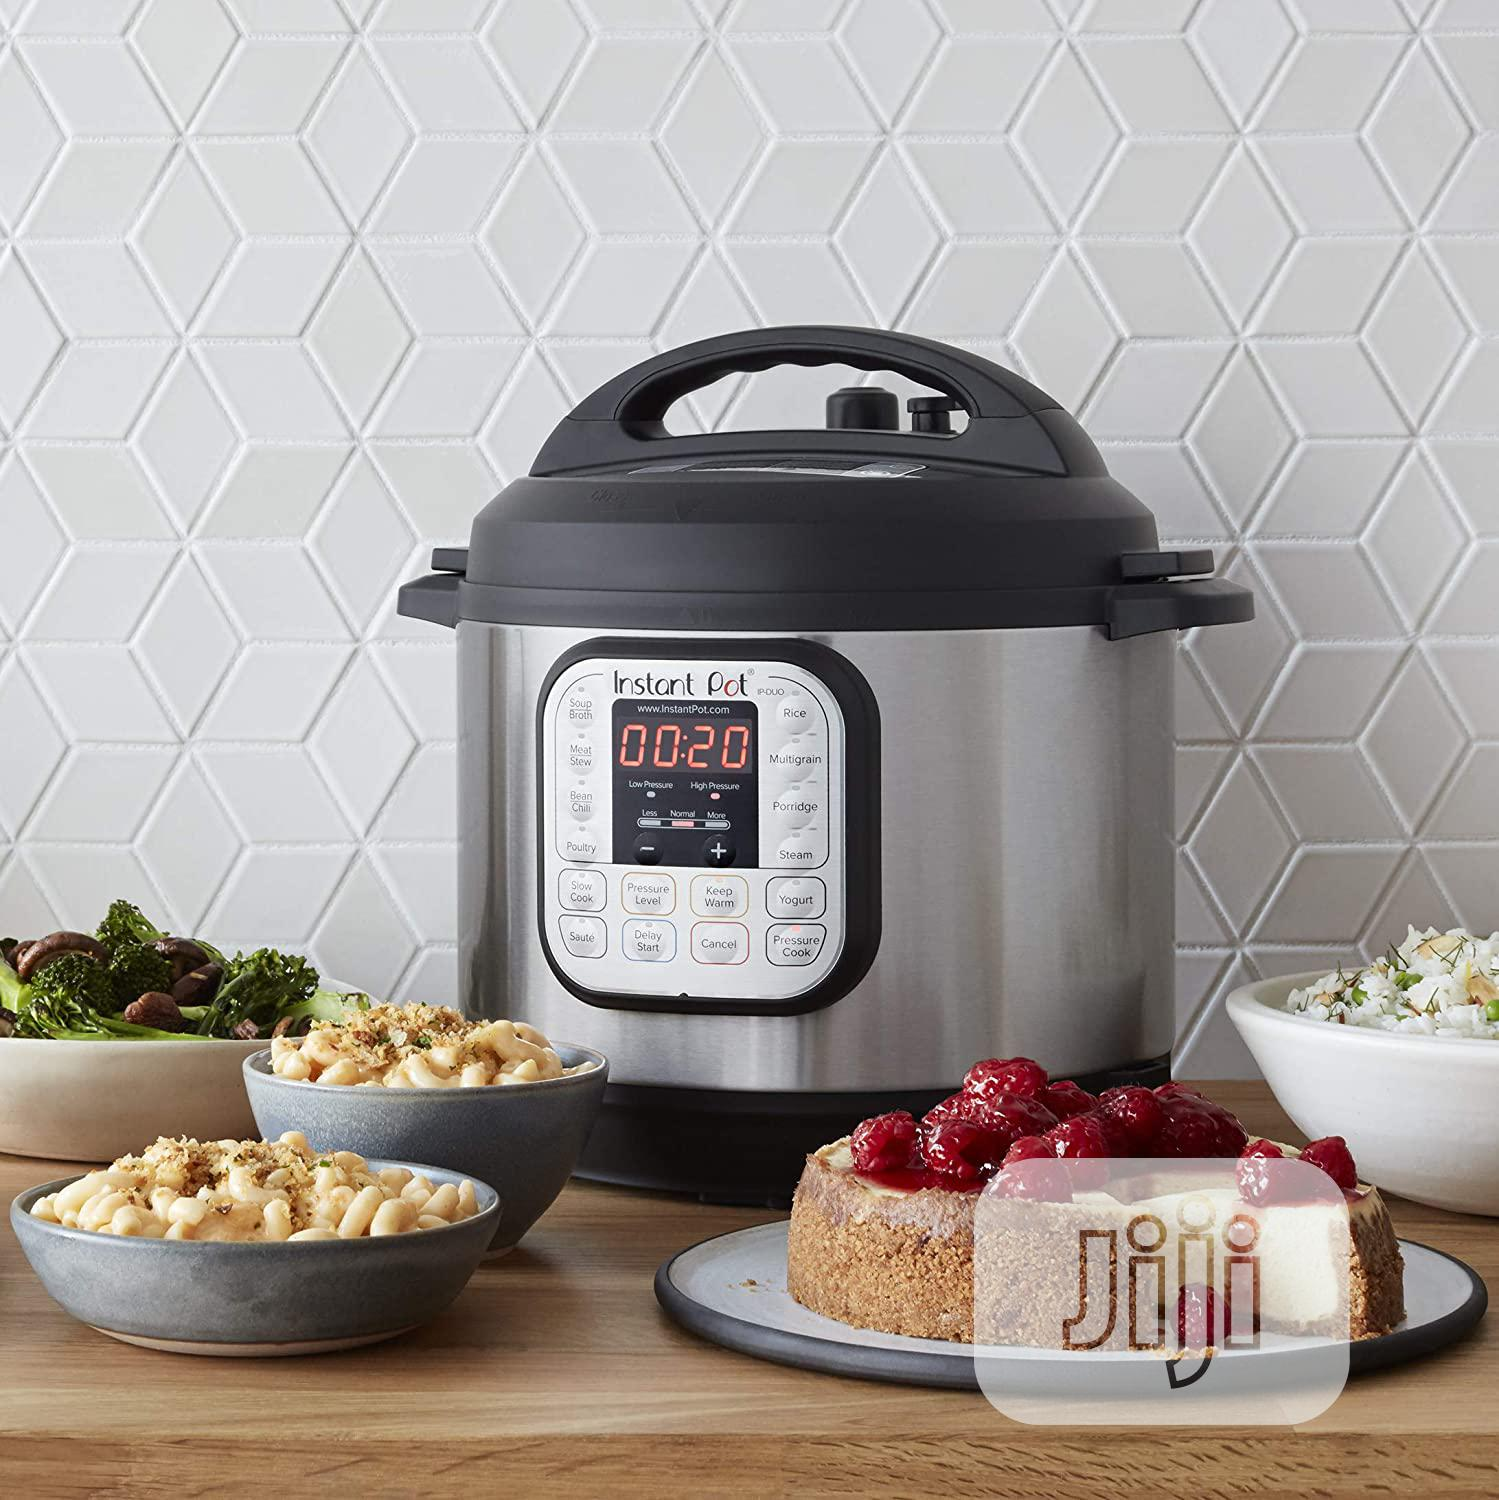 Archive: Instant Pot Duo 7-in-1 Electric Pressure Cooker